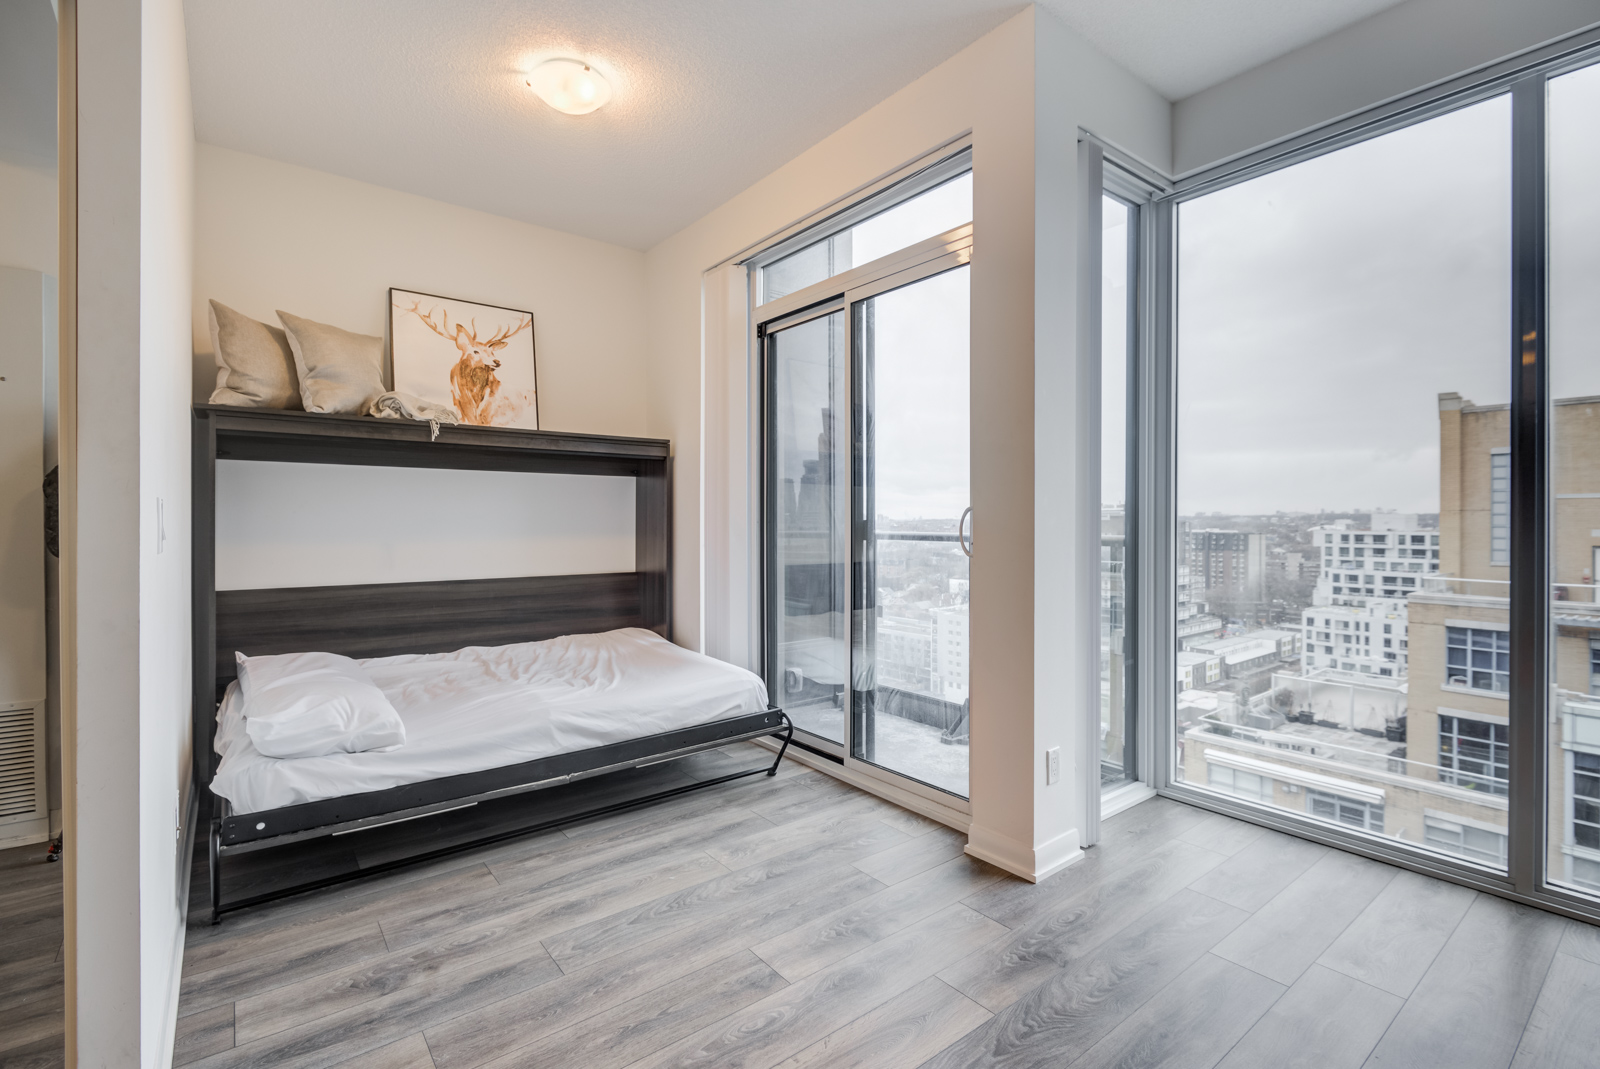 The penthouse suite with an open Murphy bed with white covers and pillow.